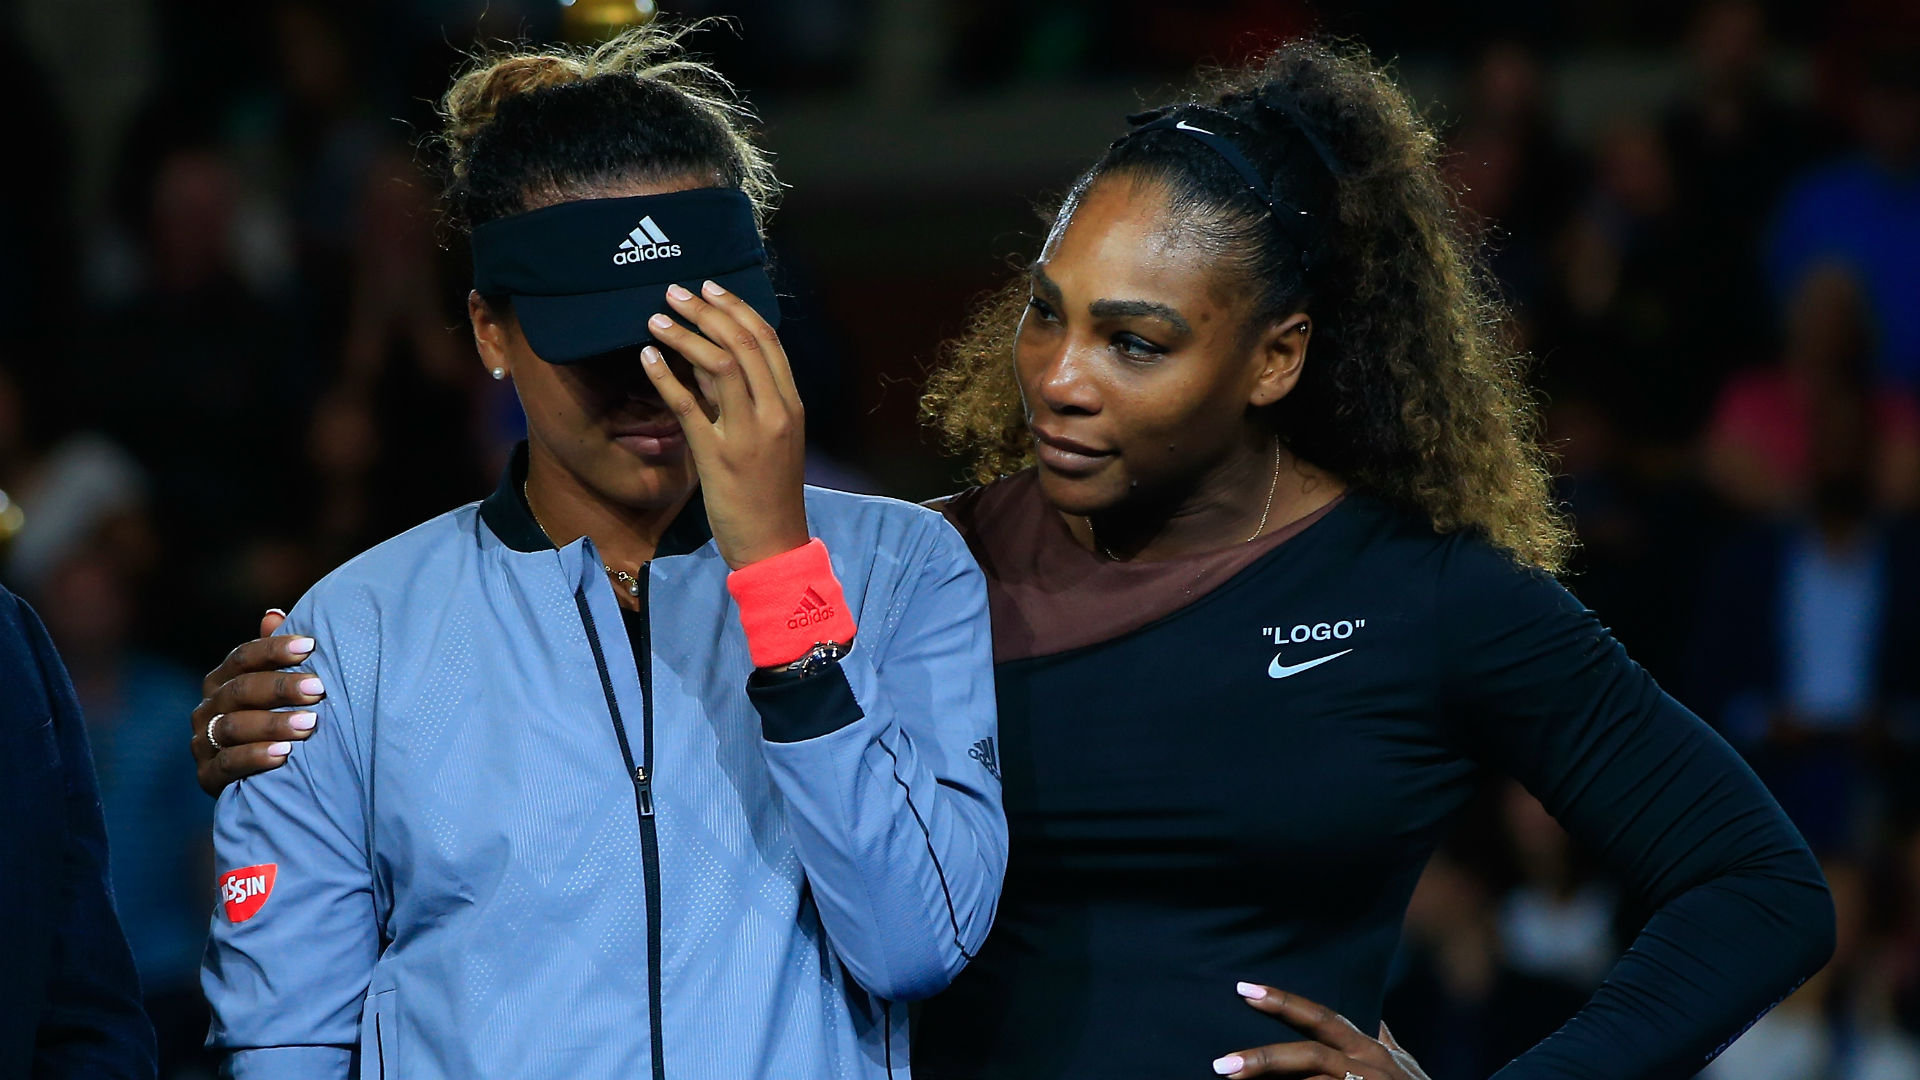 Naomi Osaka Serena Williams Cropped